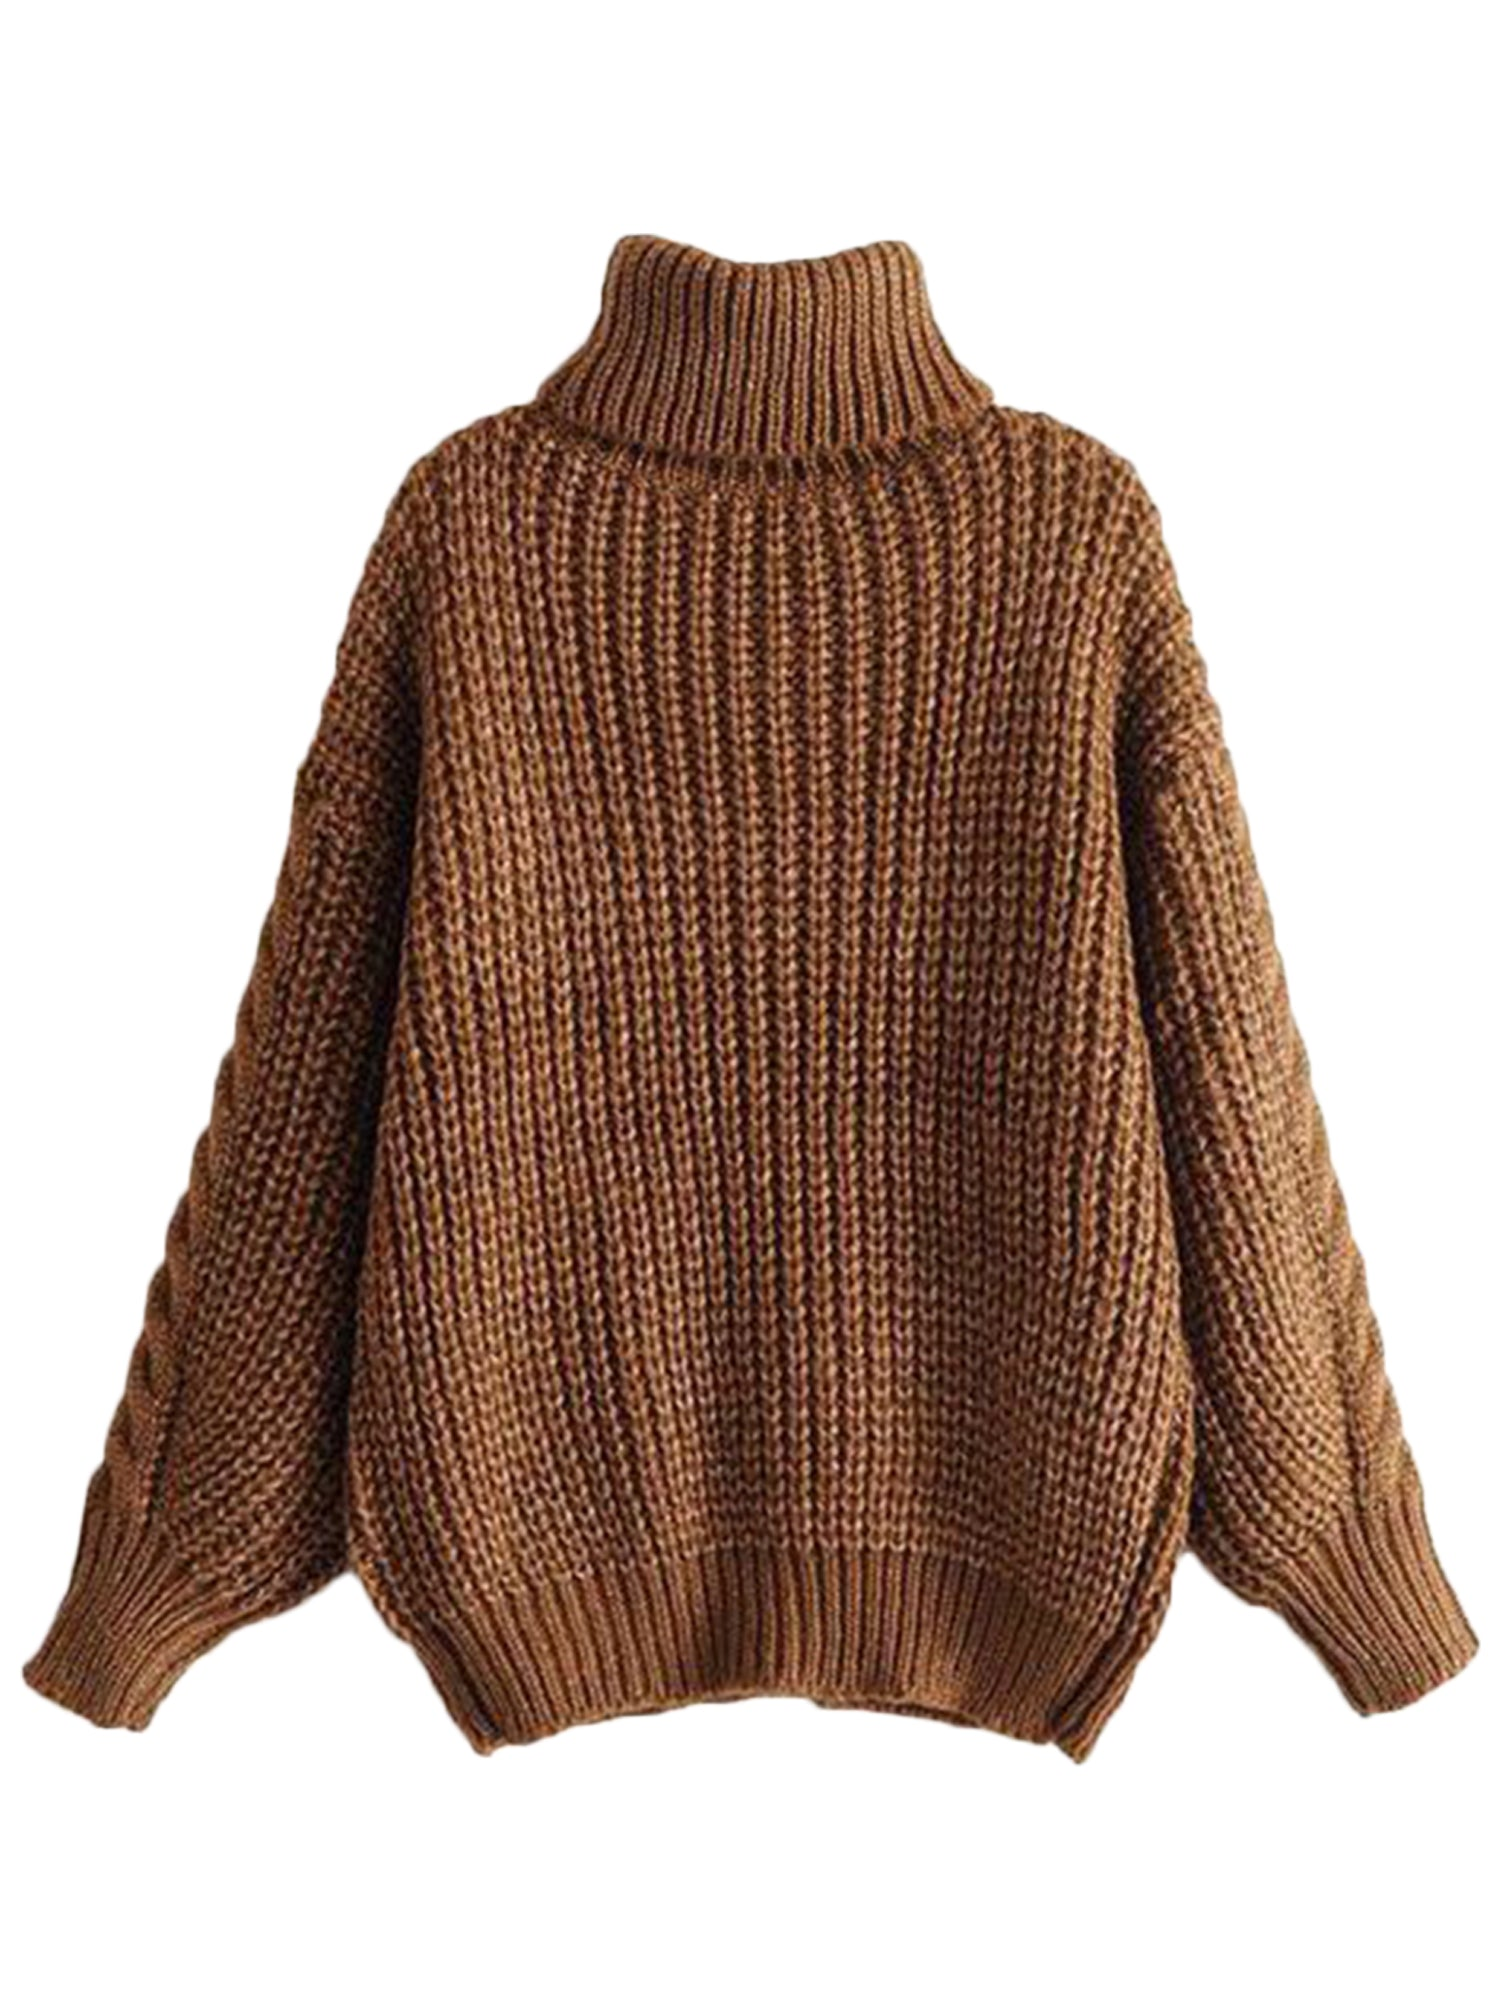 Maddie Turtleneck Cable Knit Sweater 3 Colors By